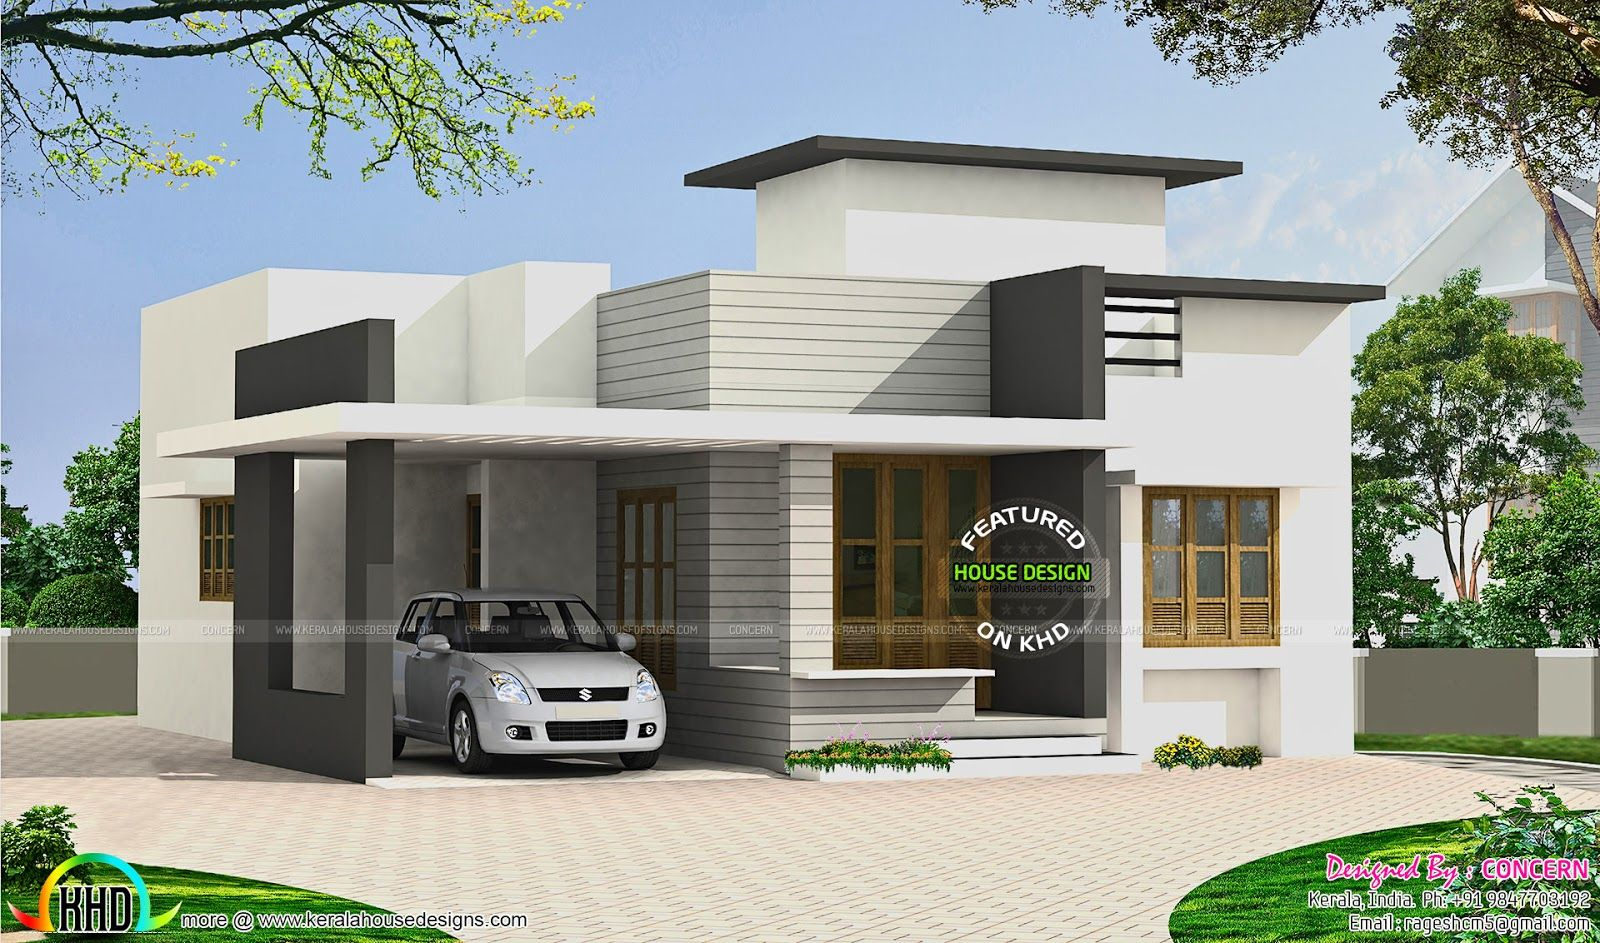 Image result for parking roof design in single floor for Kerala home design flat roof elevation